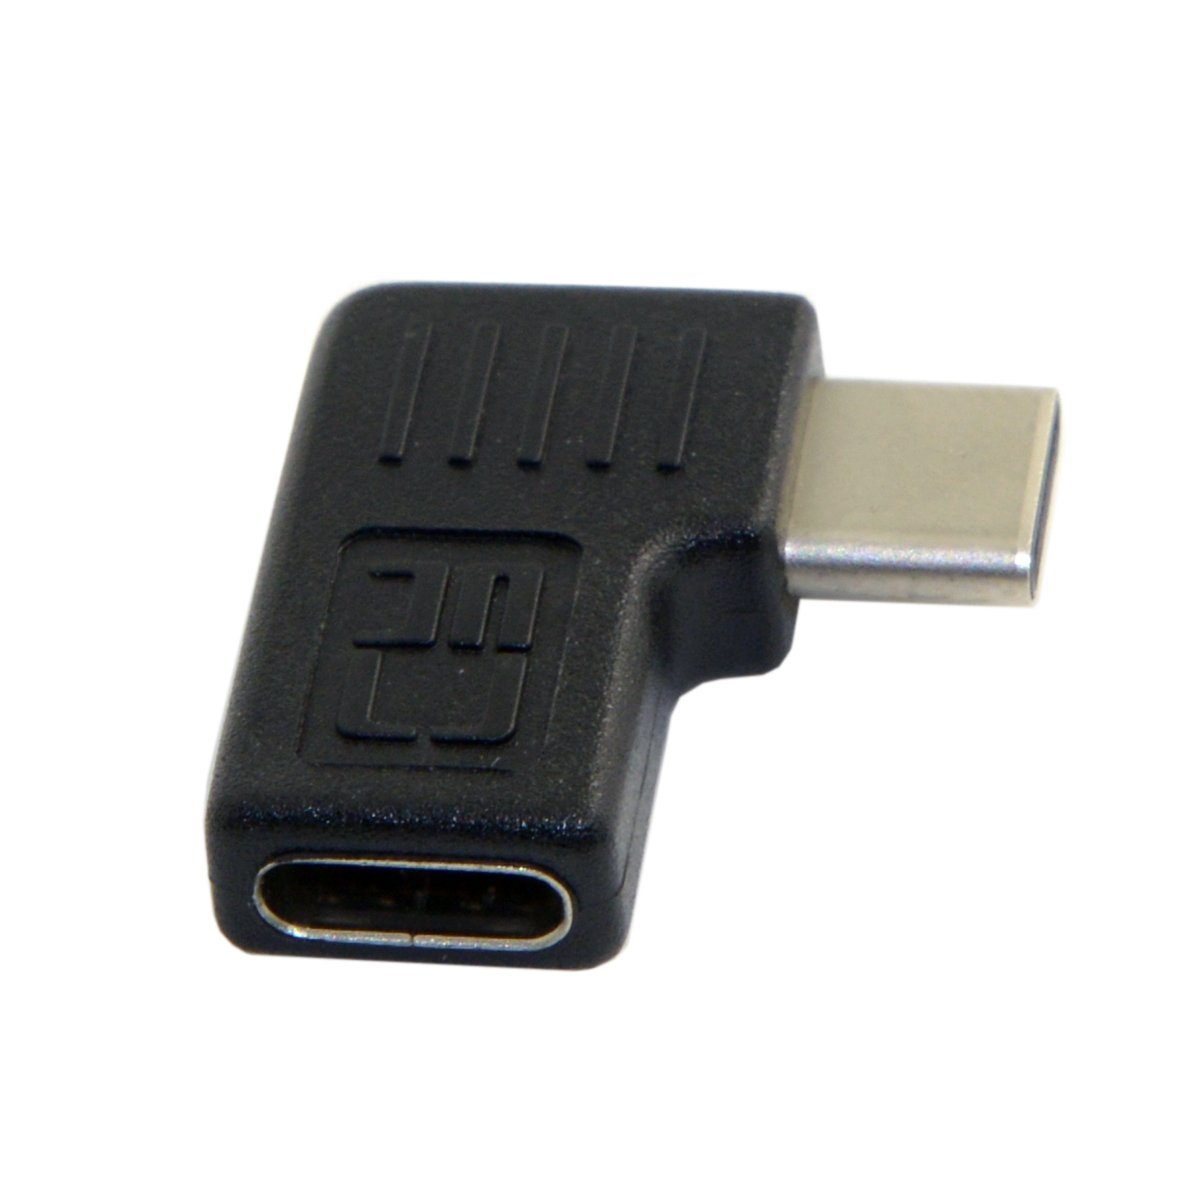 CY Right & Left Angled 90 Degree USB-C USB 3.1 Type-C Male to Female Extension Adapter for Laptop & Tablet & Mobile Phone